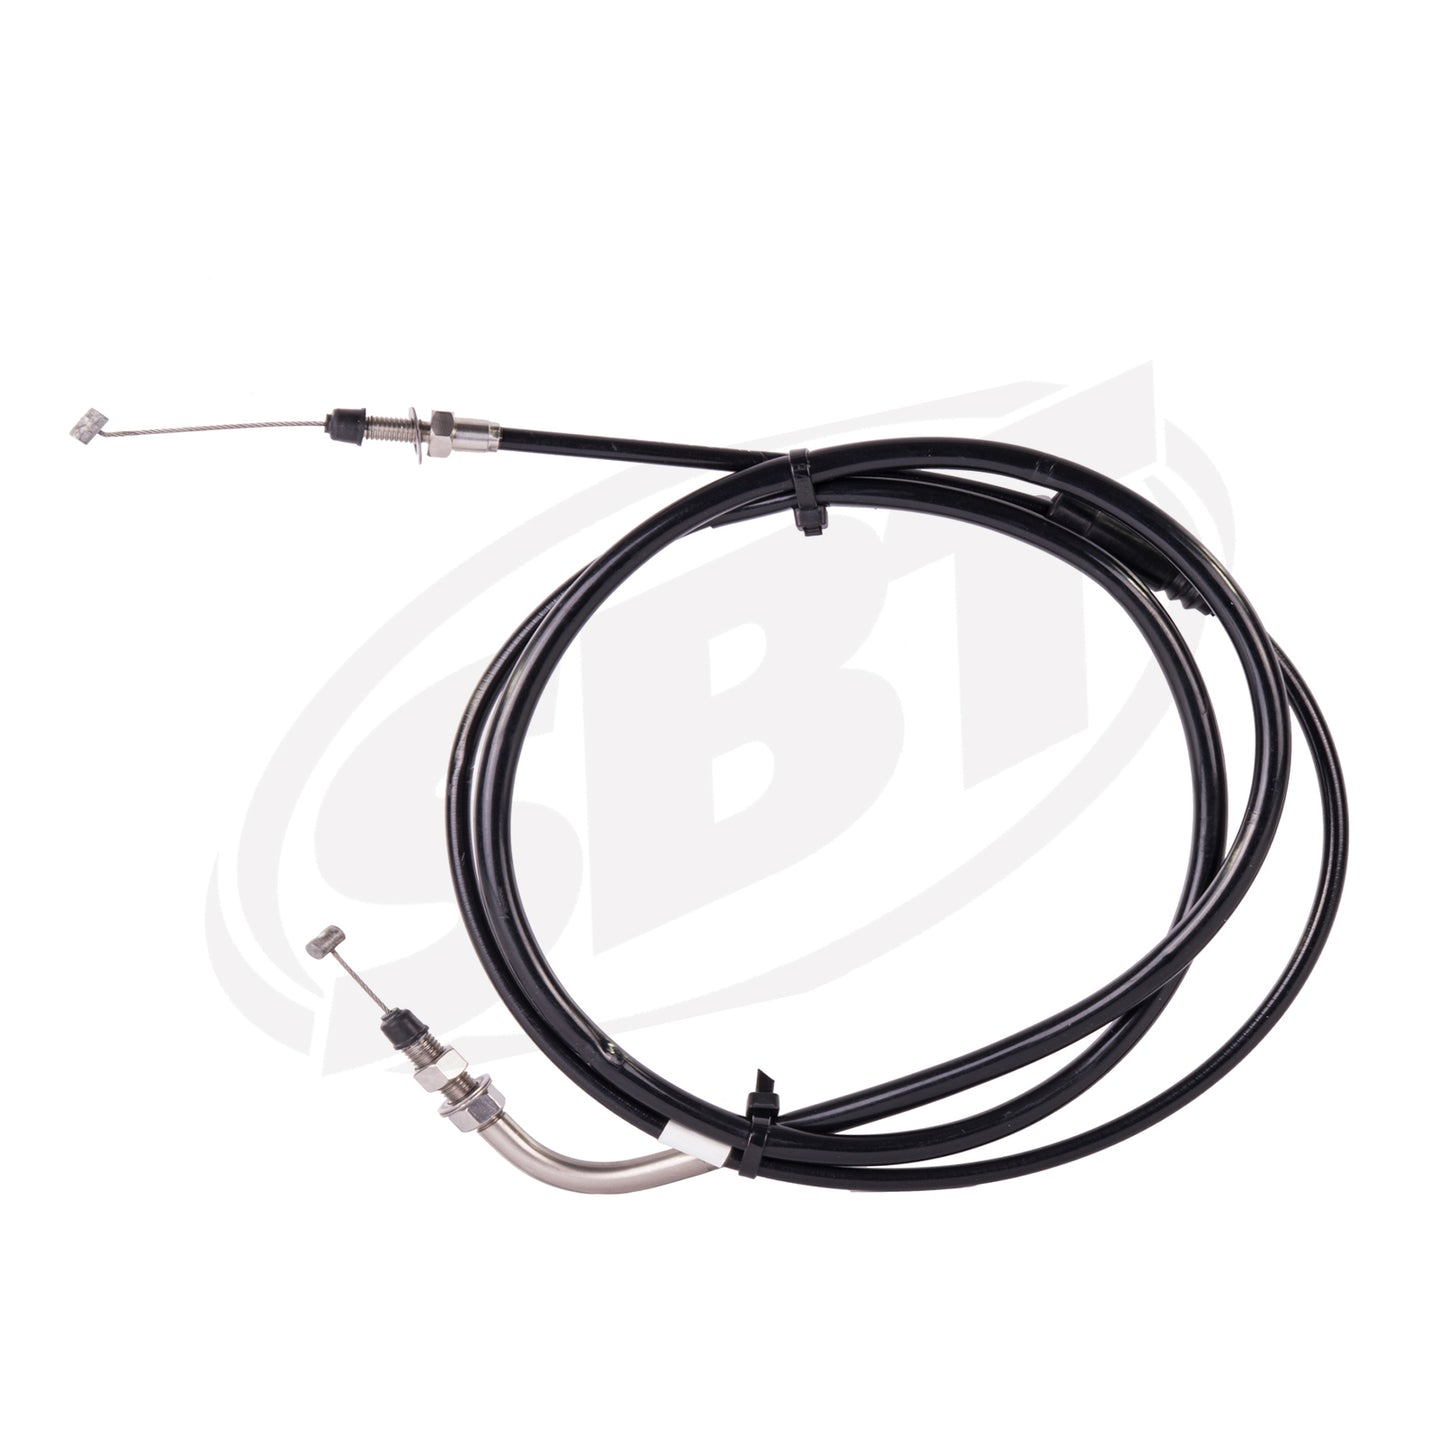 SBT Kawasaki Throttle Cable 1100 STX 54012-3750 1997